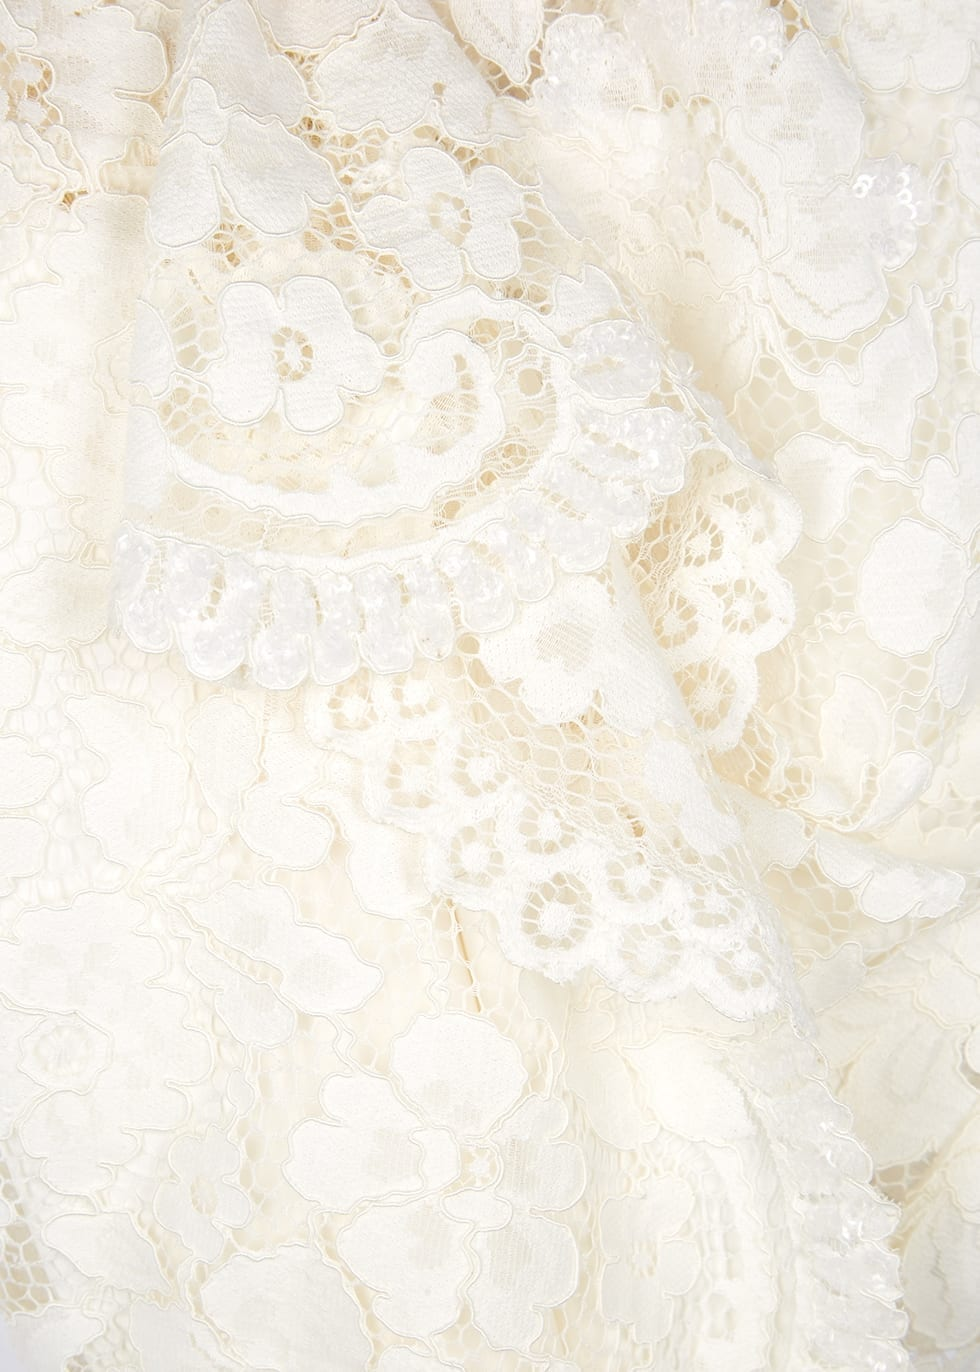 MARC JACOBS Ivory Embellished Lace Mini Dress